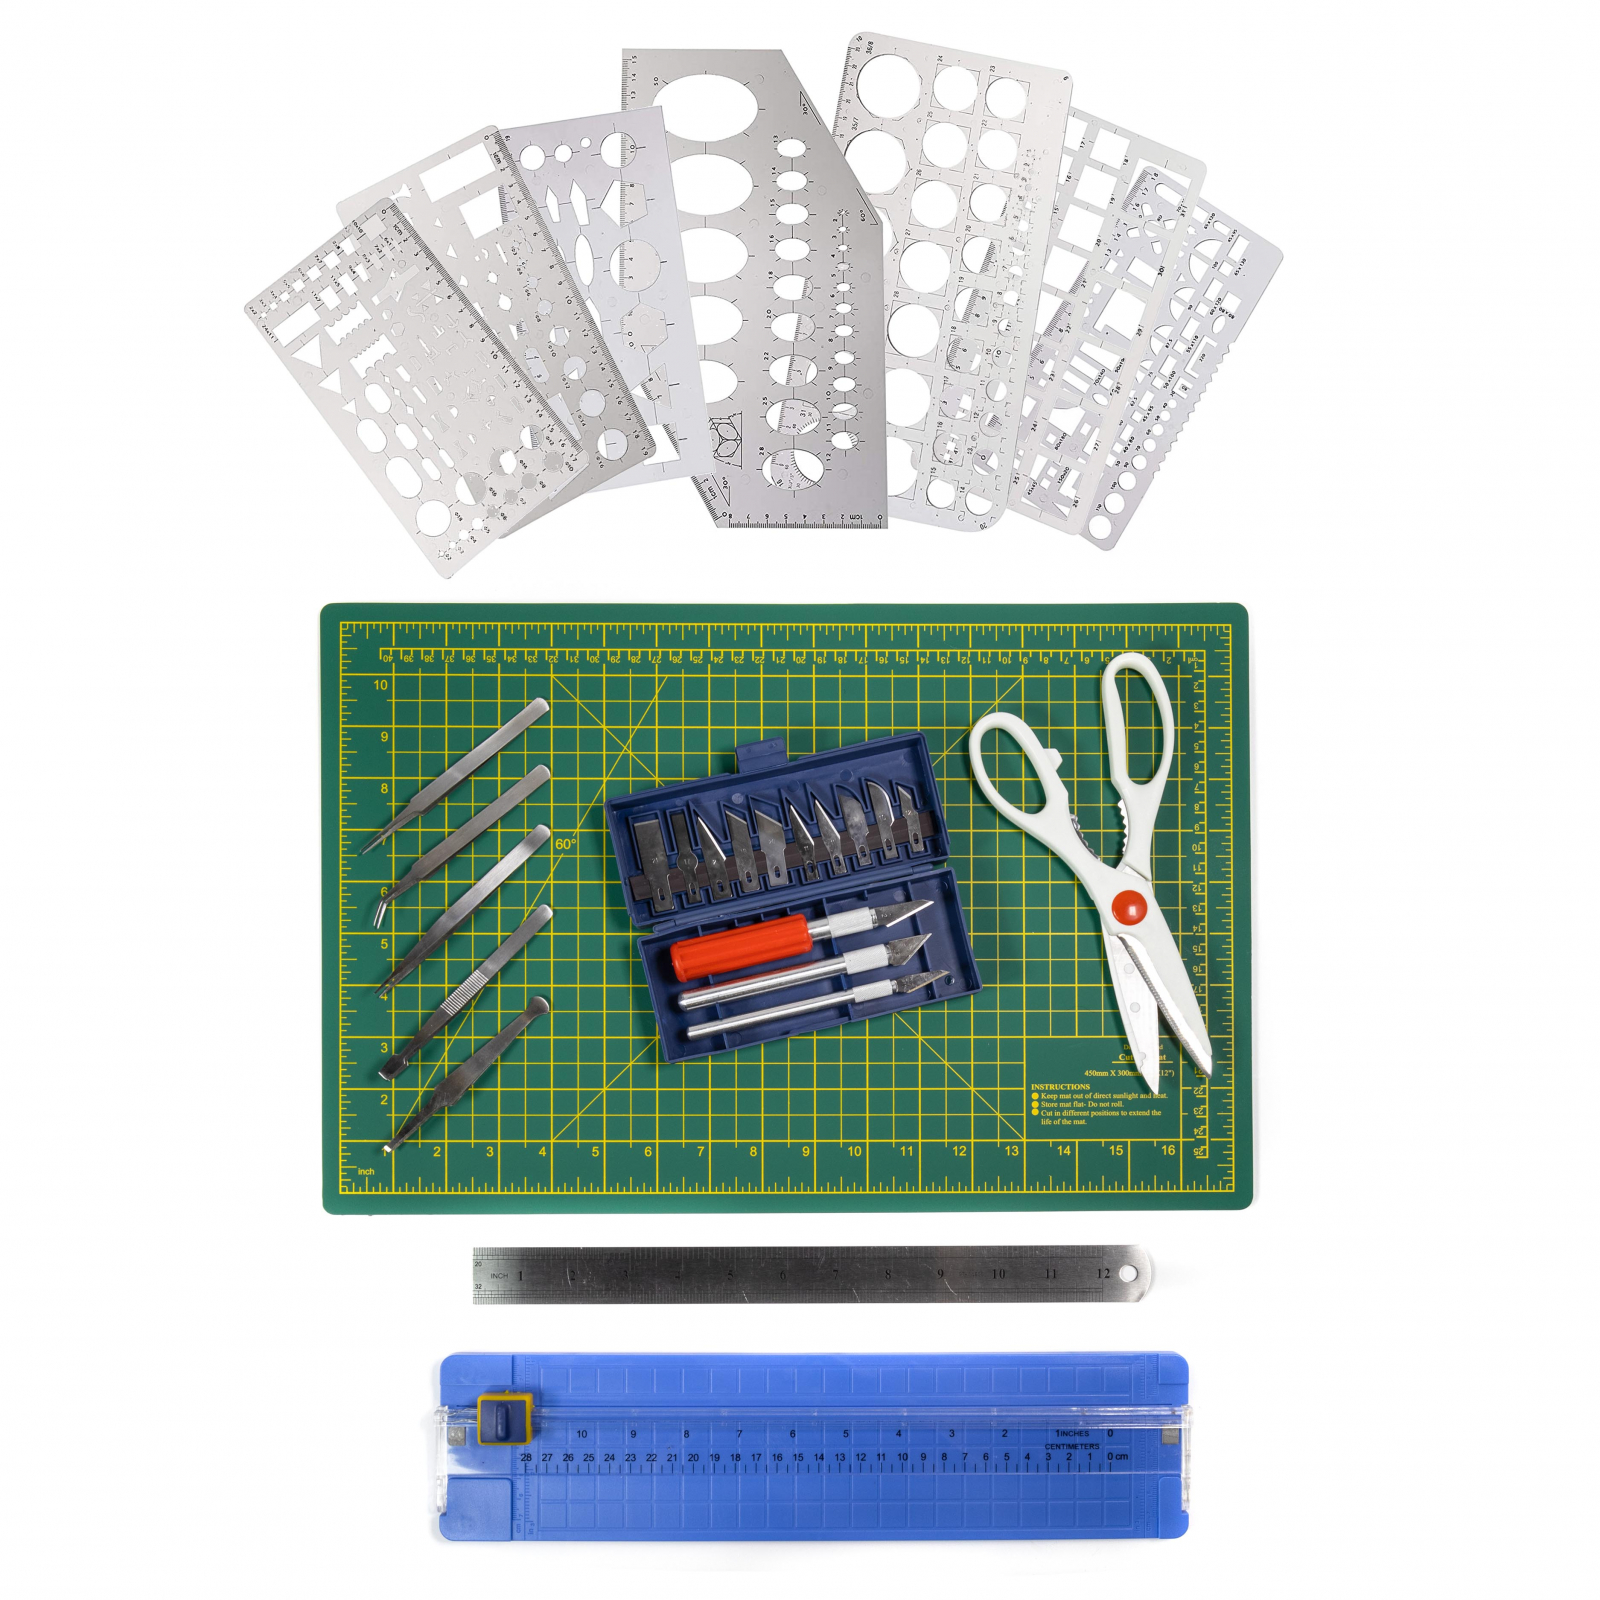 ToolTreaux Stationery Scrapbooking Supplies Crafts Kit, 26pc